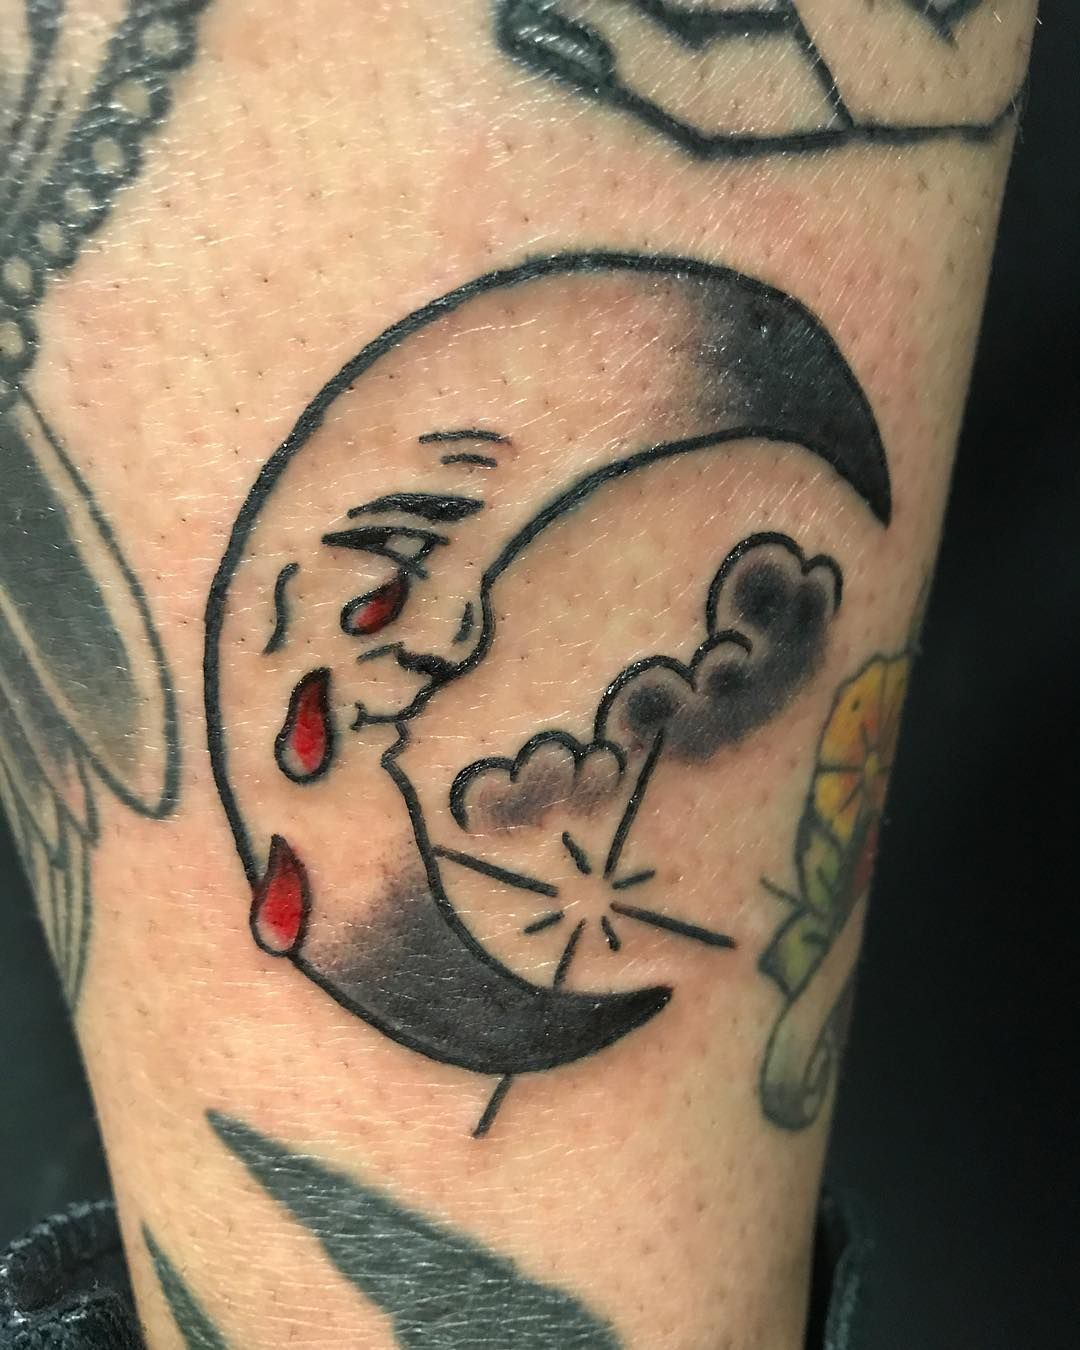 Cry Tears Mr MoonFun Little Jammer from tonight So pumped to get